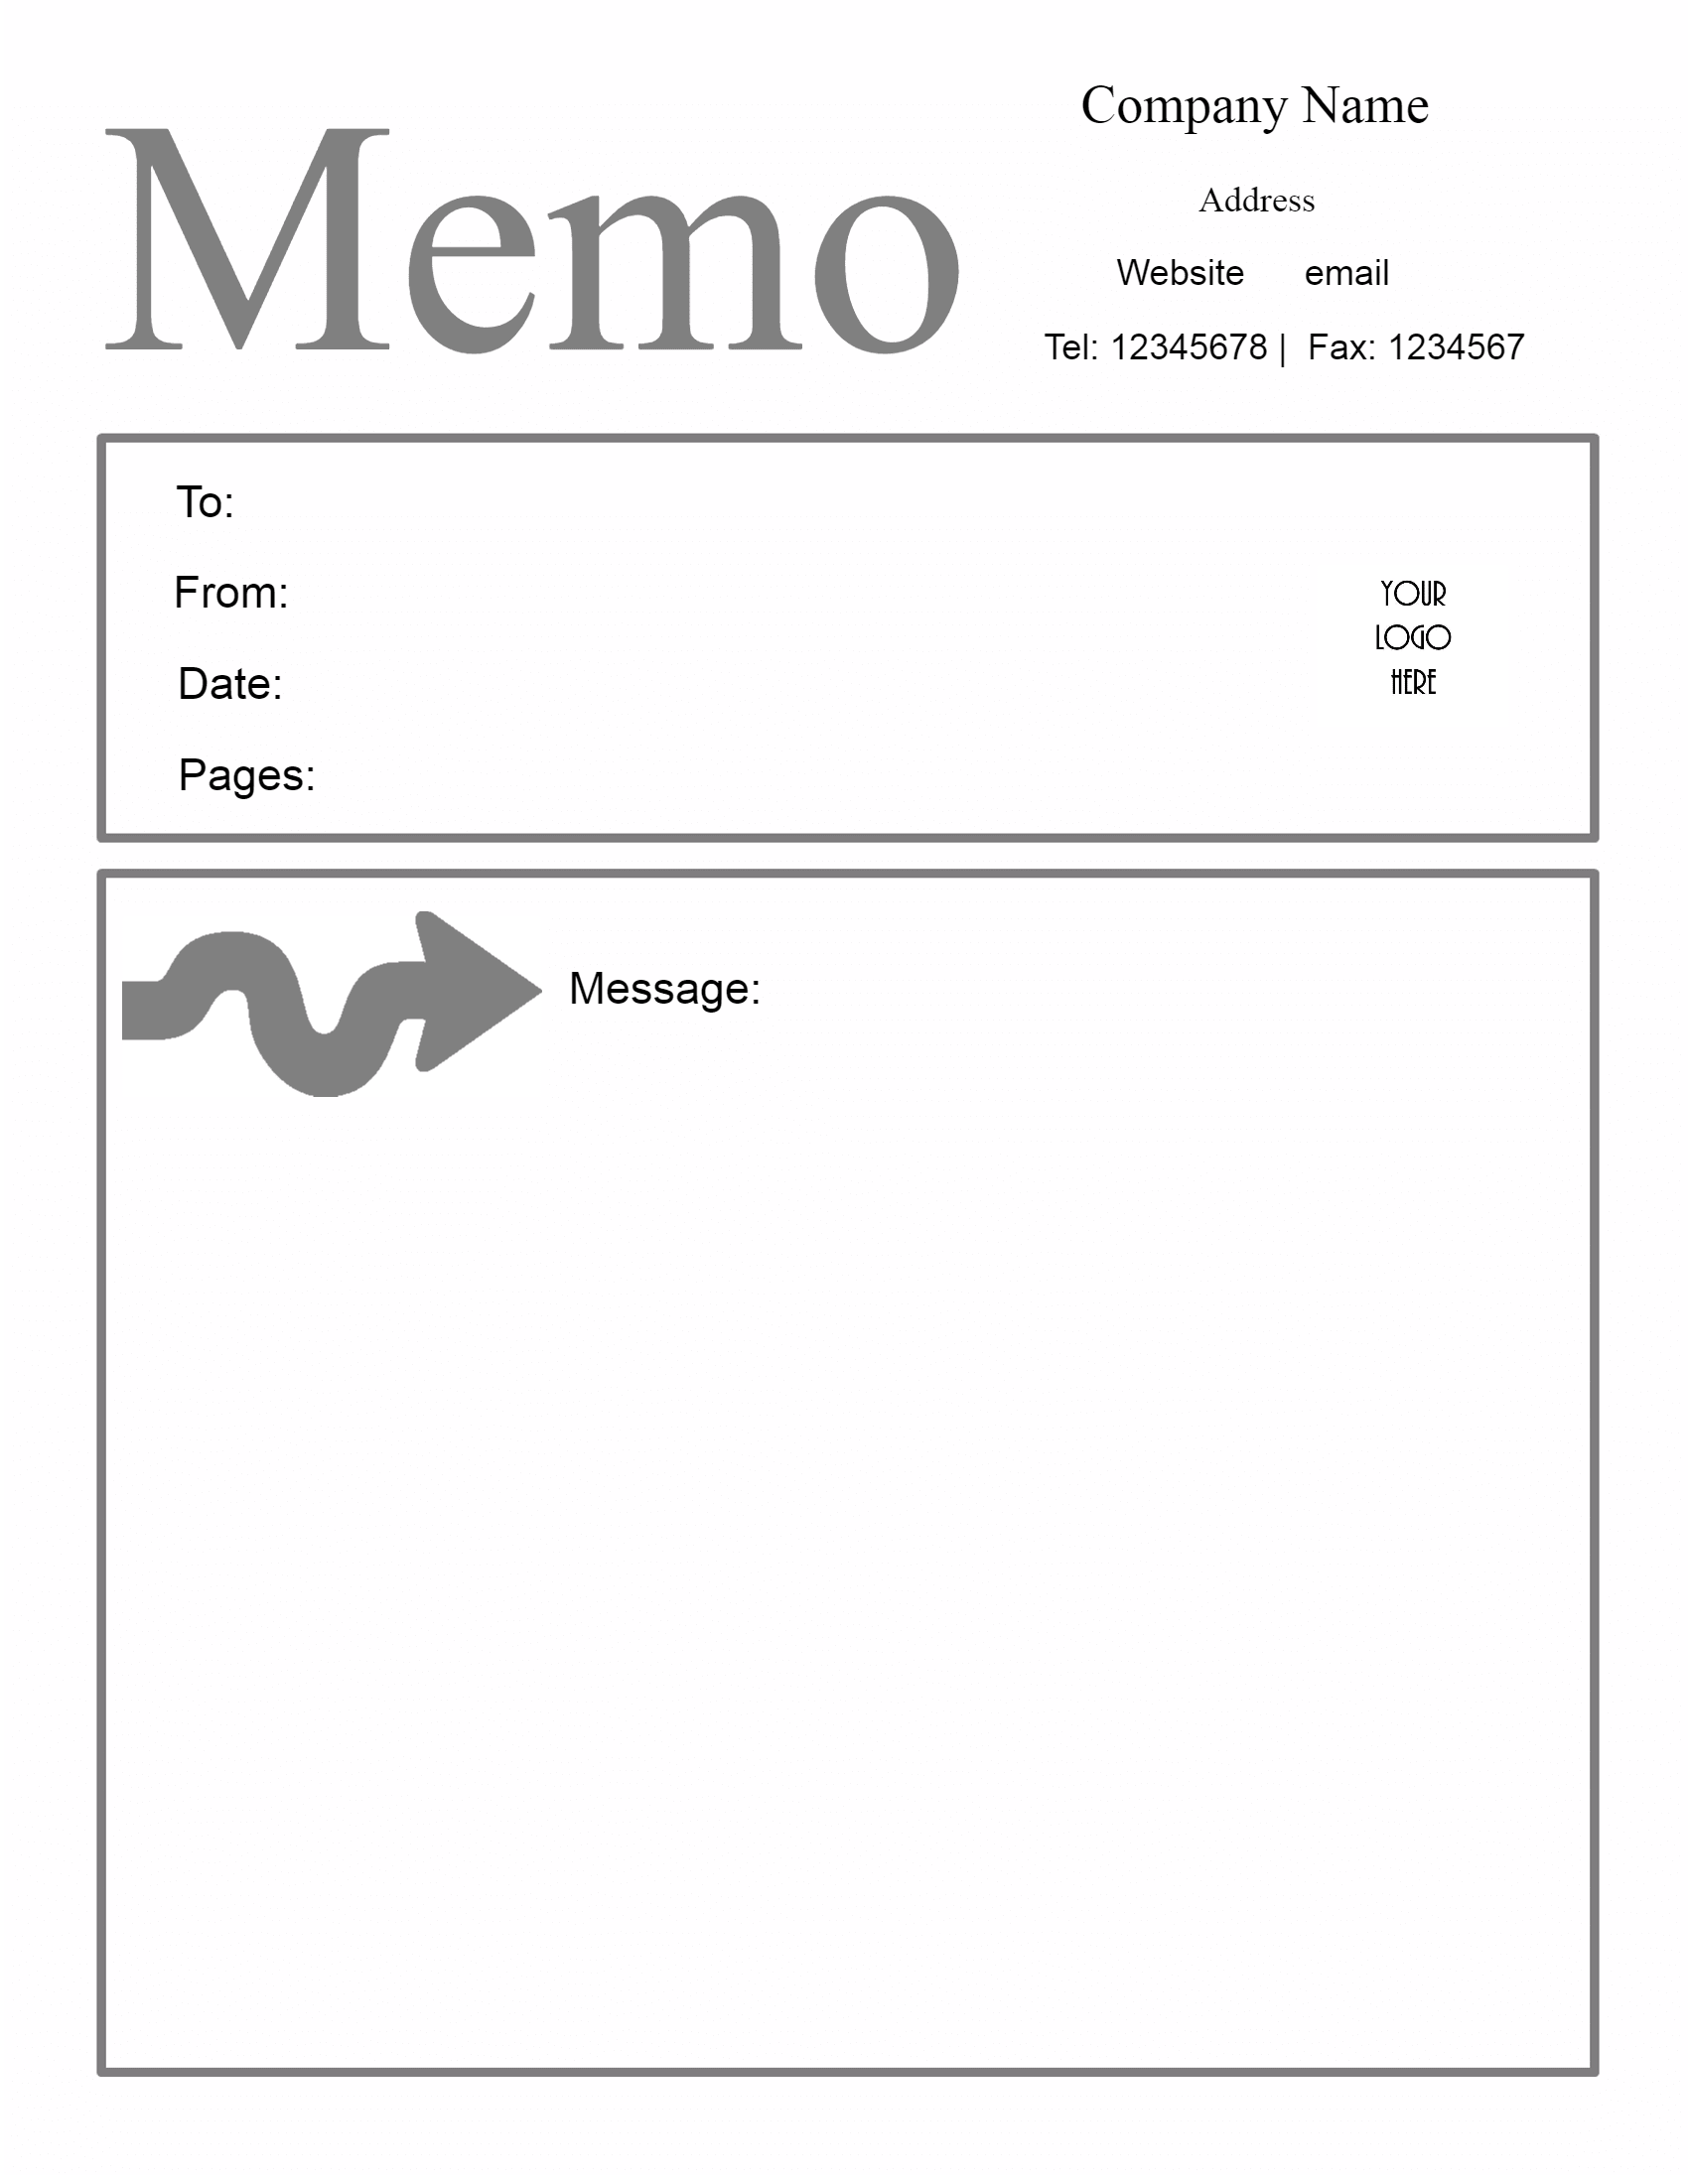 microsoft word memo template a memo short for memorandum is a short written document that is usually used to communicate in a company or organization we offer many memo templates